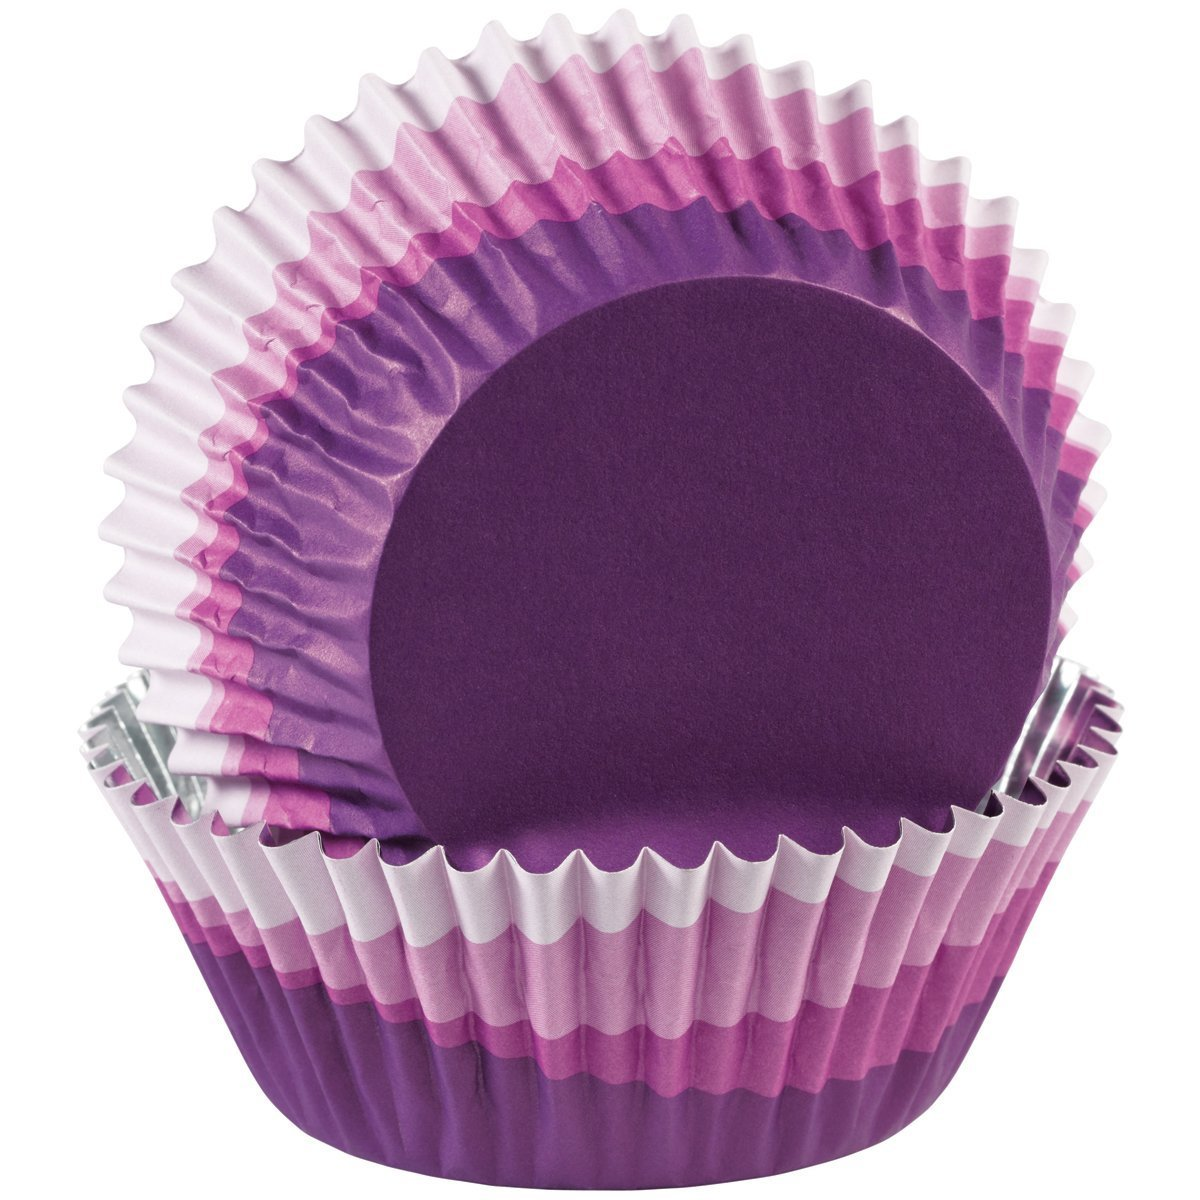 Blue Ombre Wilton ColorCup Standard Baking Cups 36-Pack W415CC-0631